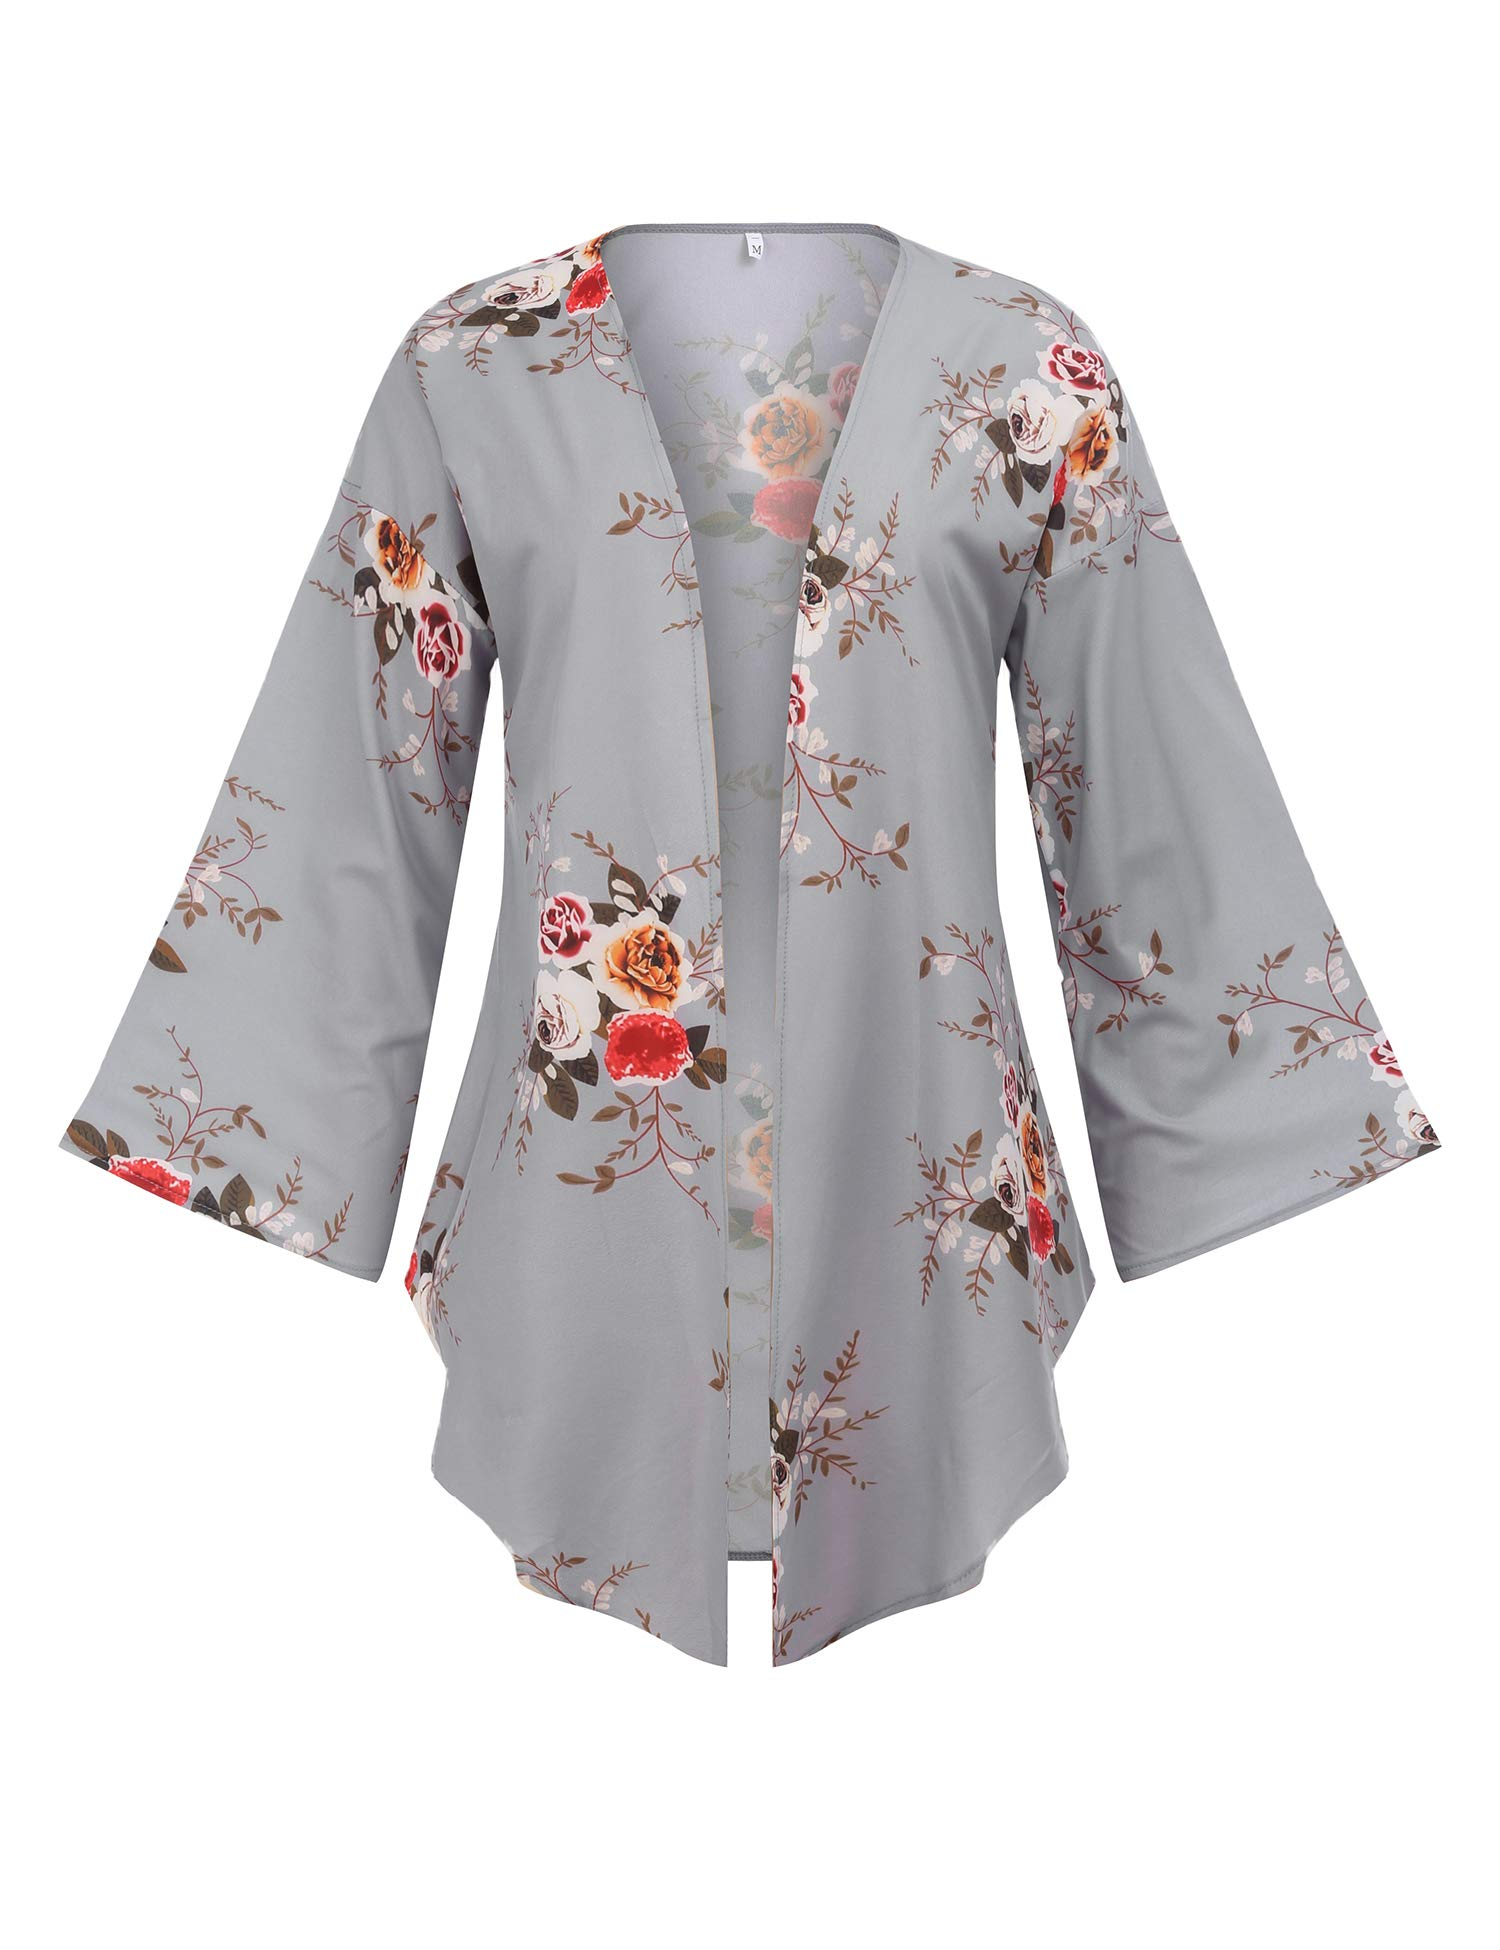 FISOUL Women's Kimono Cardigan Open Front Floral Print Loose Lightweight Long Sleeve Casual Cover up Cape Blouse